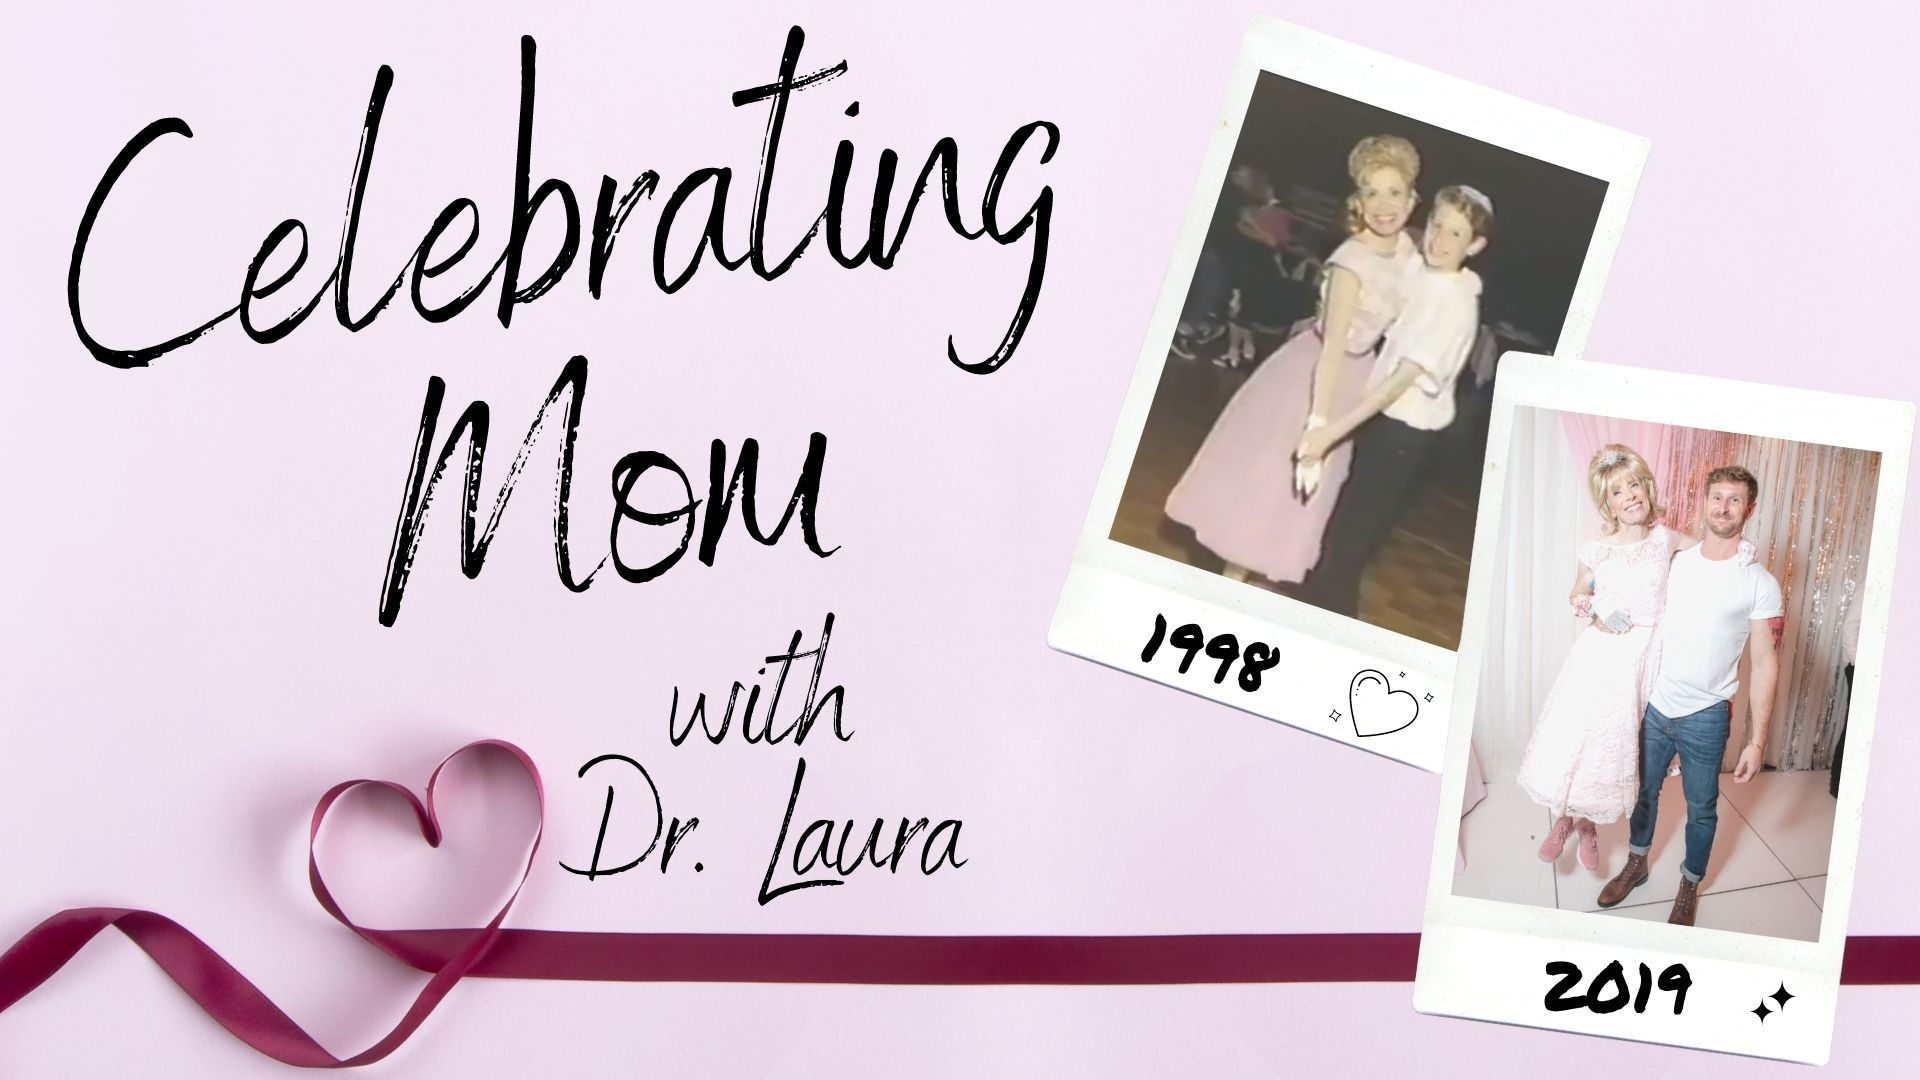 YouTube: Celebrating Mom with Dr. Laura